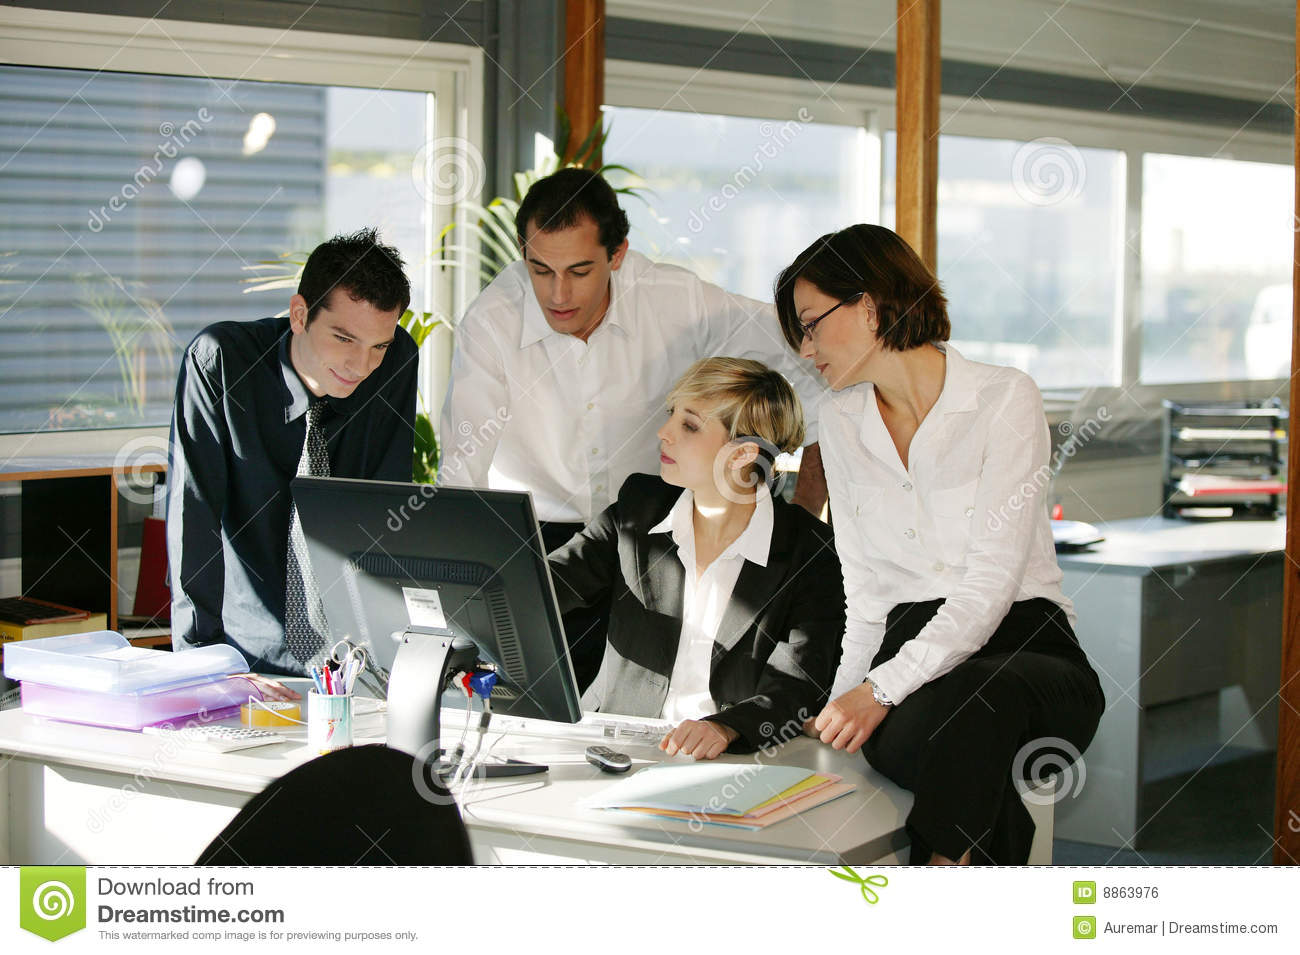 Men and women at desk with computer